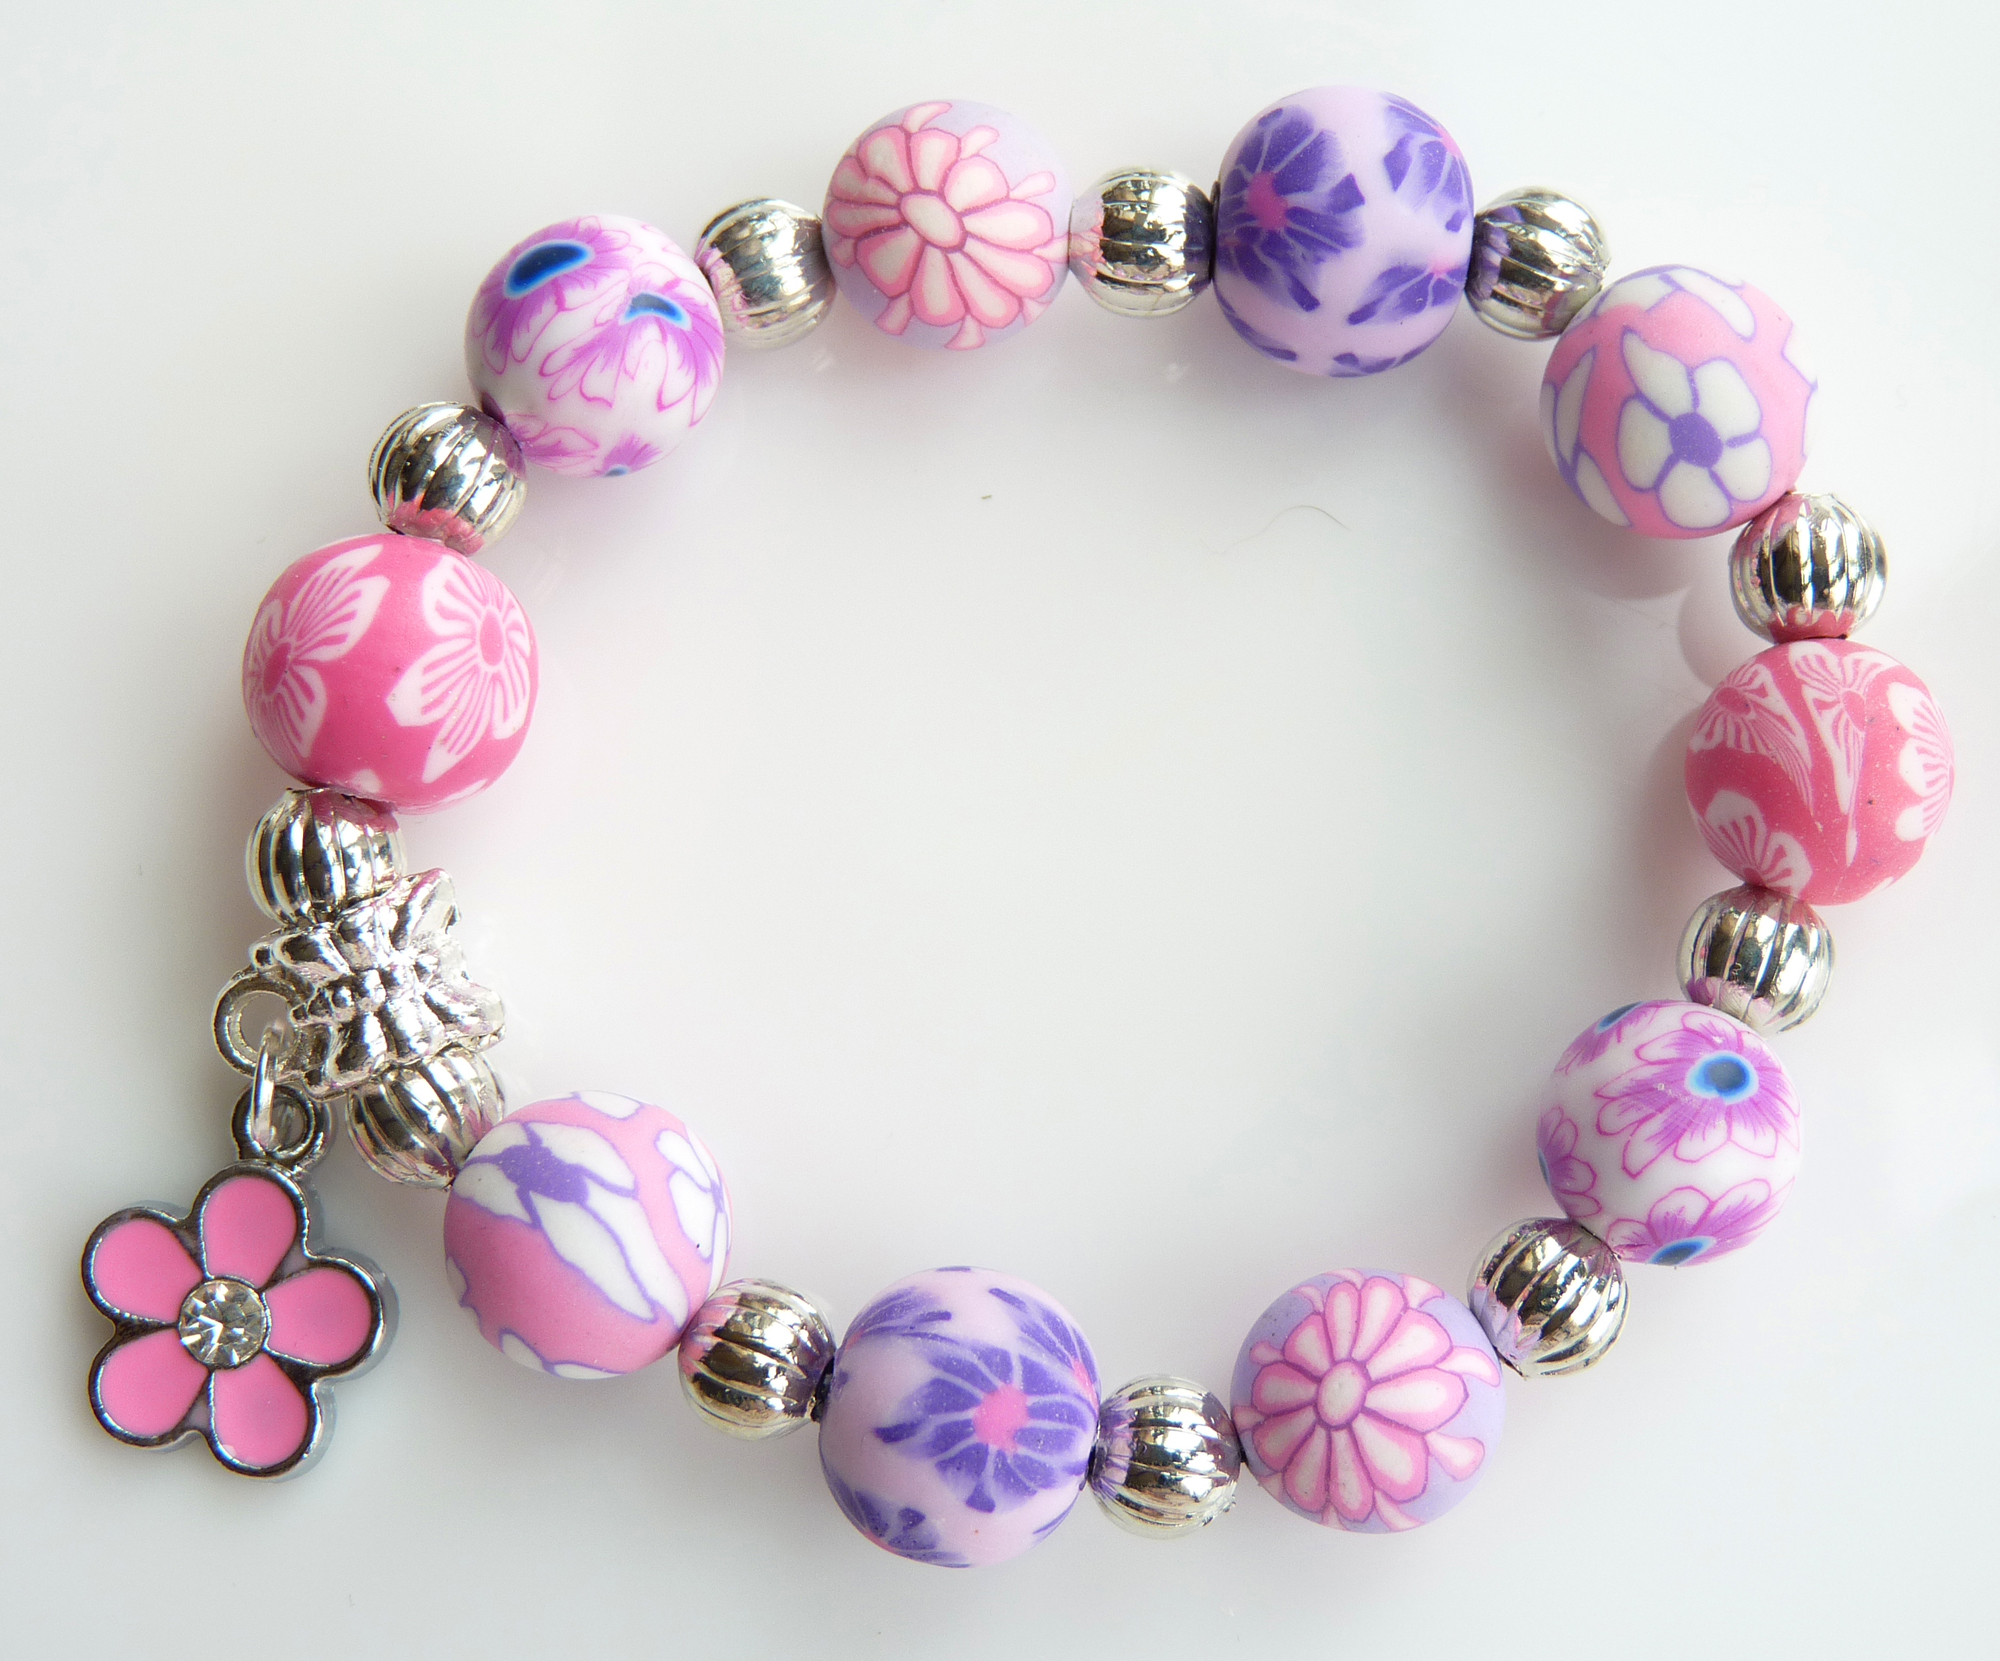 Snazzy Girls | Snazzy Beads: Handmade Clay Jewelry, Polymer Clay ...